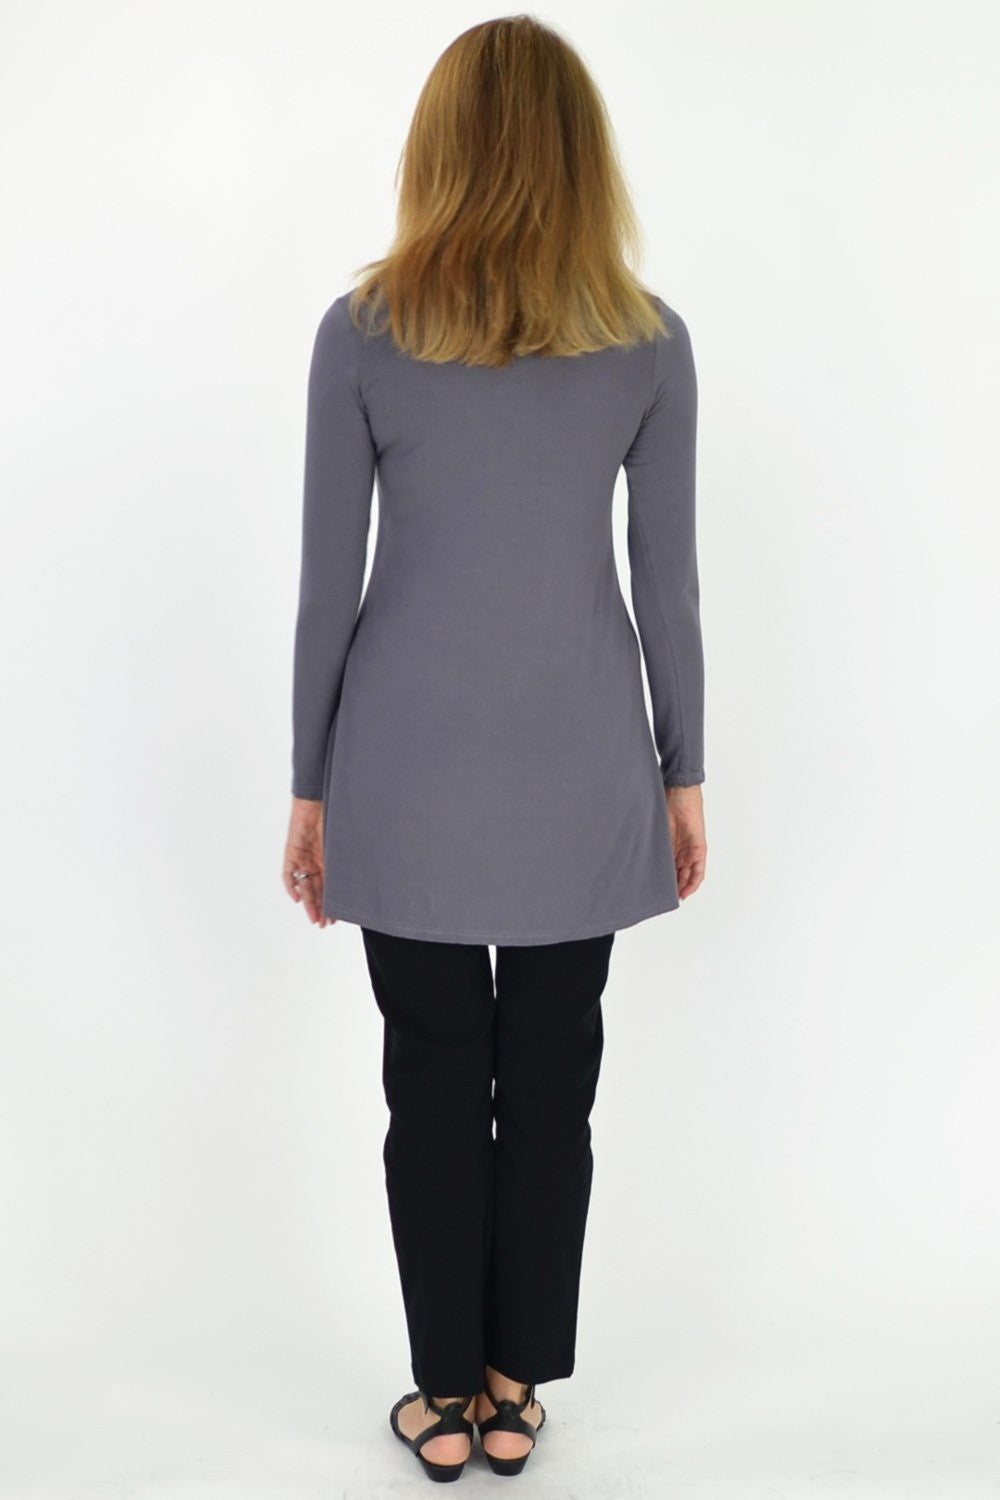 Bamboo Tunic - at I Love Tunics @ www.ilovetunics.com = Number One! Tunics Destination